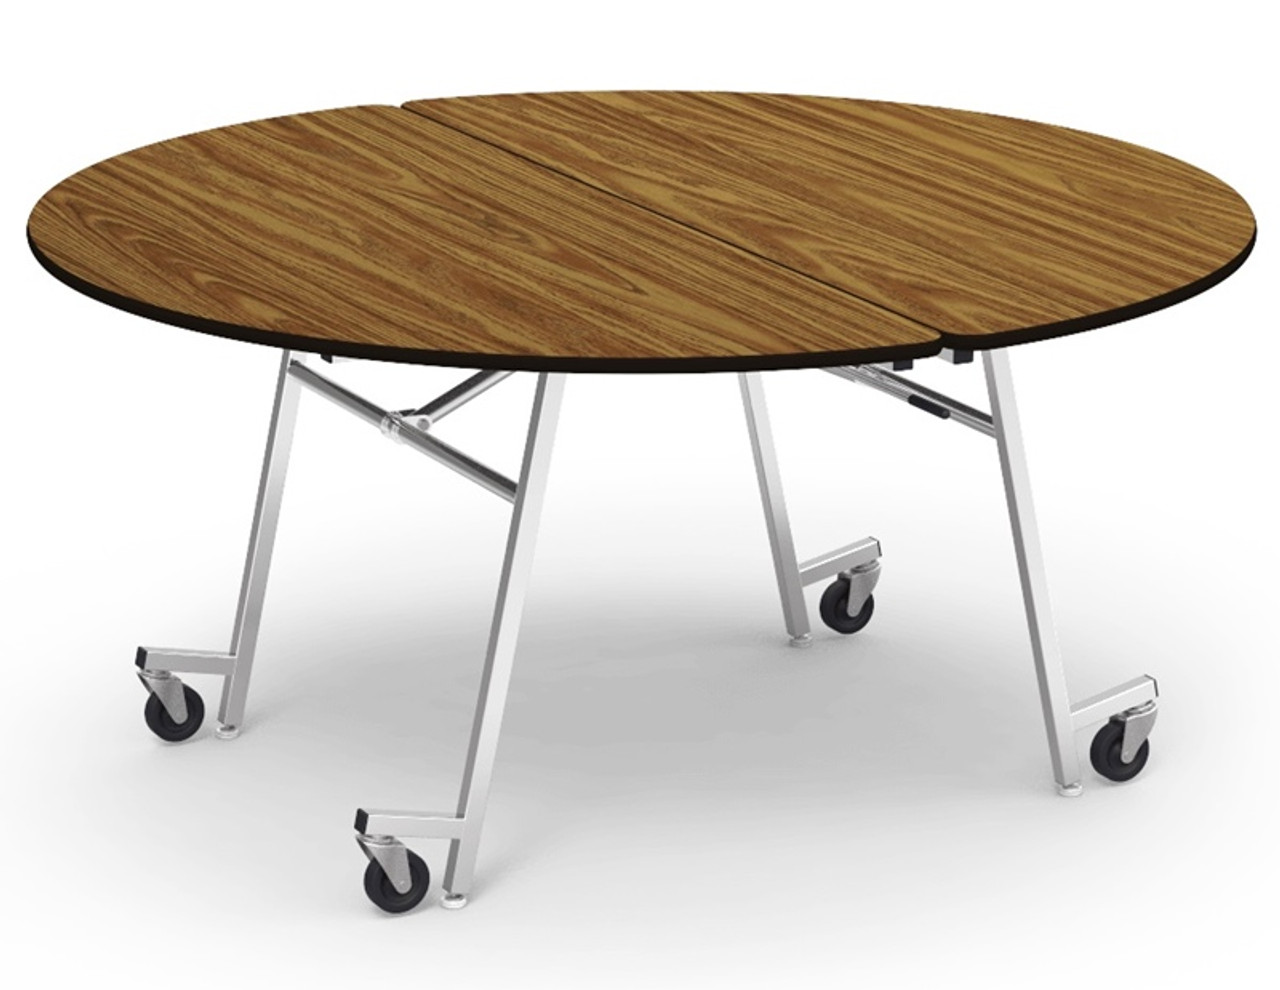 Virco Mt60r 60 In Round Mobile Cafeteria Table Cafeteria Tables School Cafeteria Seating For Sale